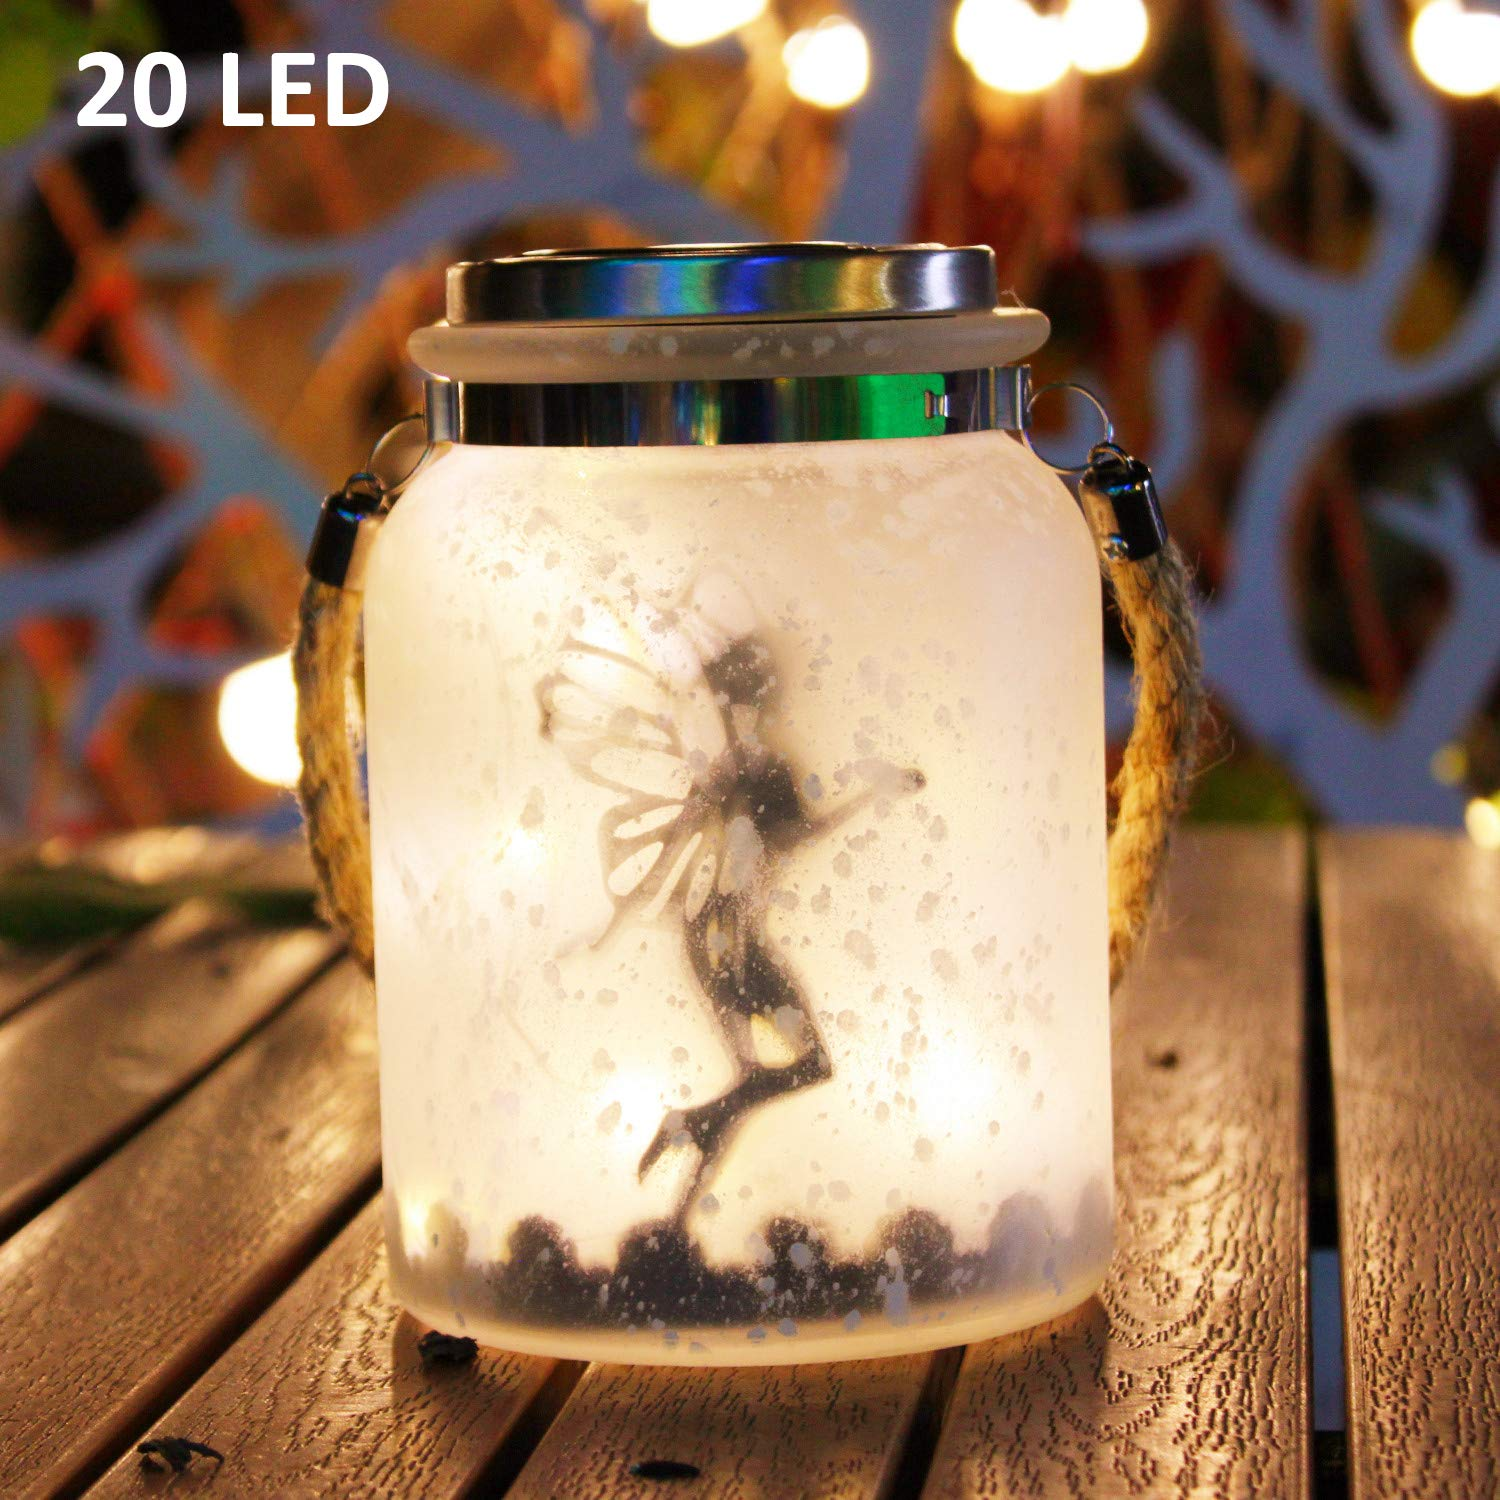 Solar Lantern Fairy Lights, Ideal for Great Gifts, White Frosted Glass Hanging Jar Solar Lights Outdoor Decorative, 20 Warm White Mini LED String Lights (6.25'' Tall)